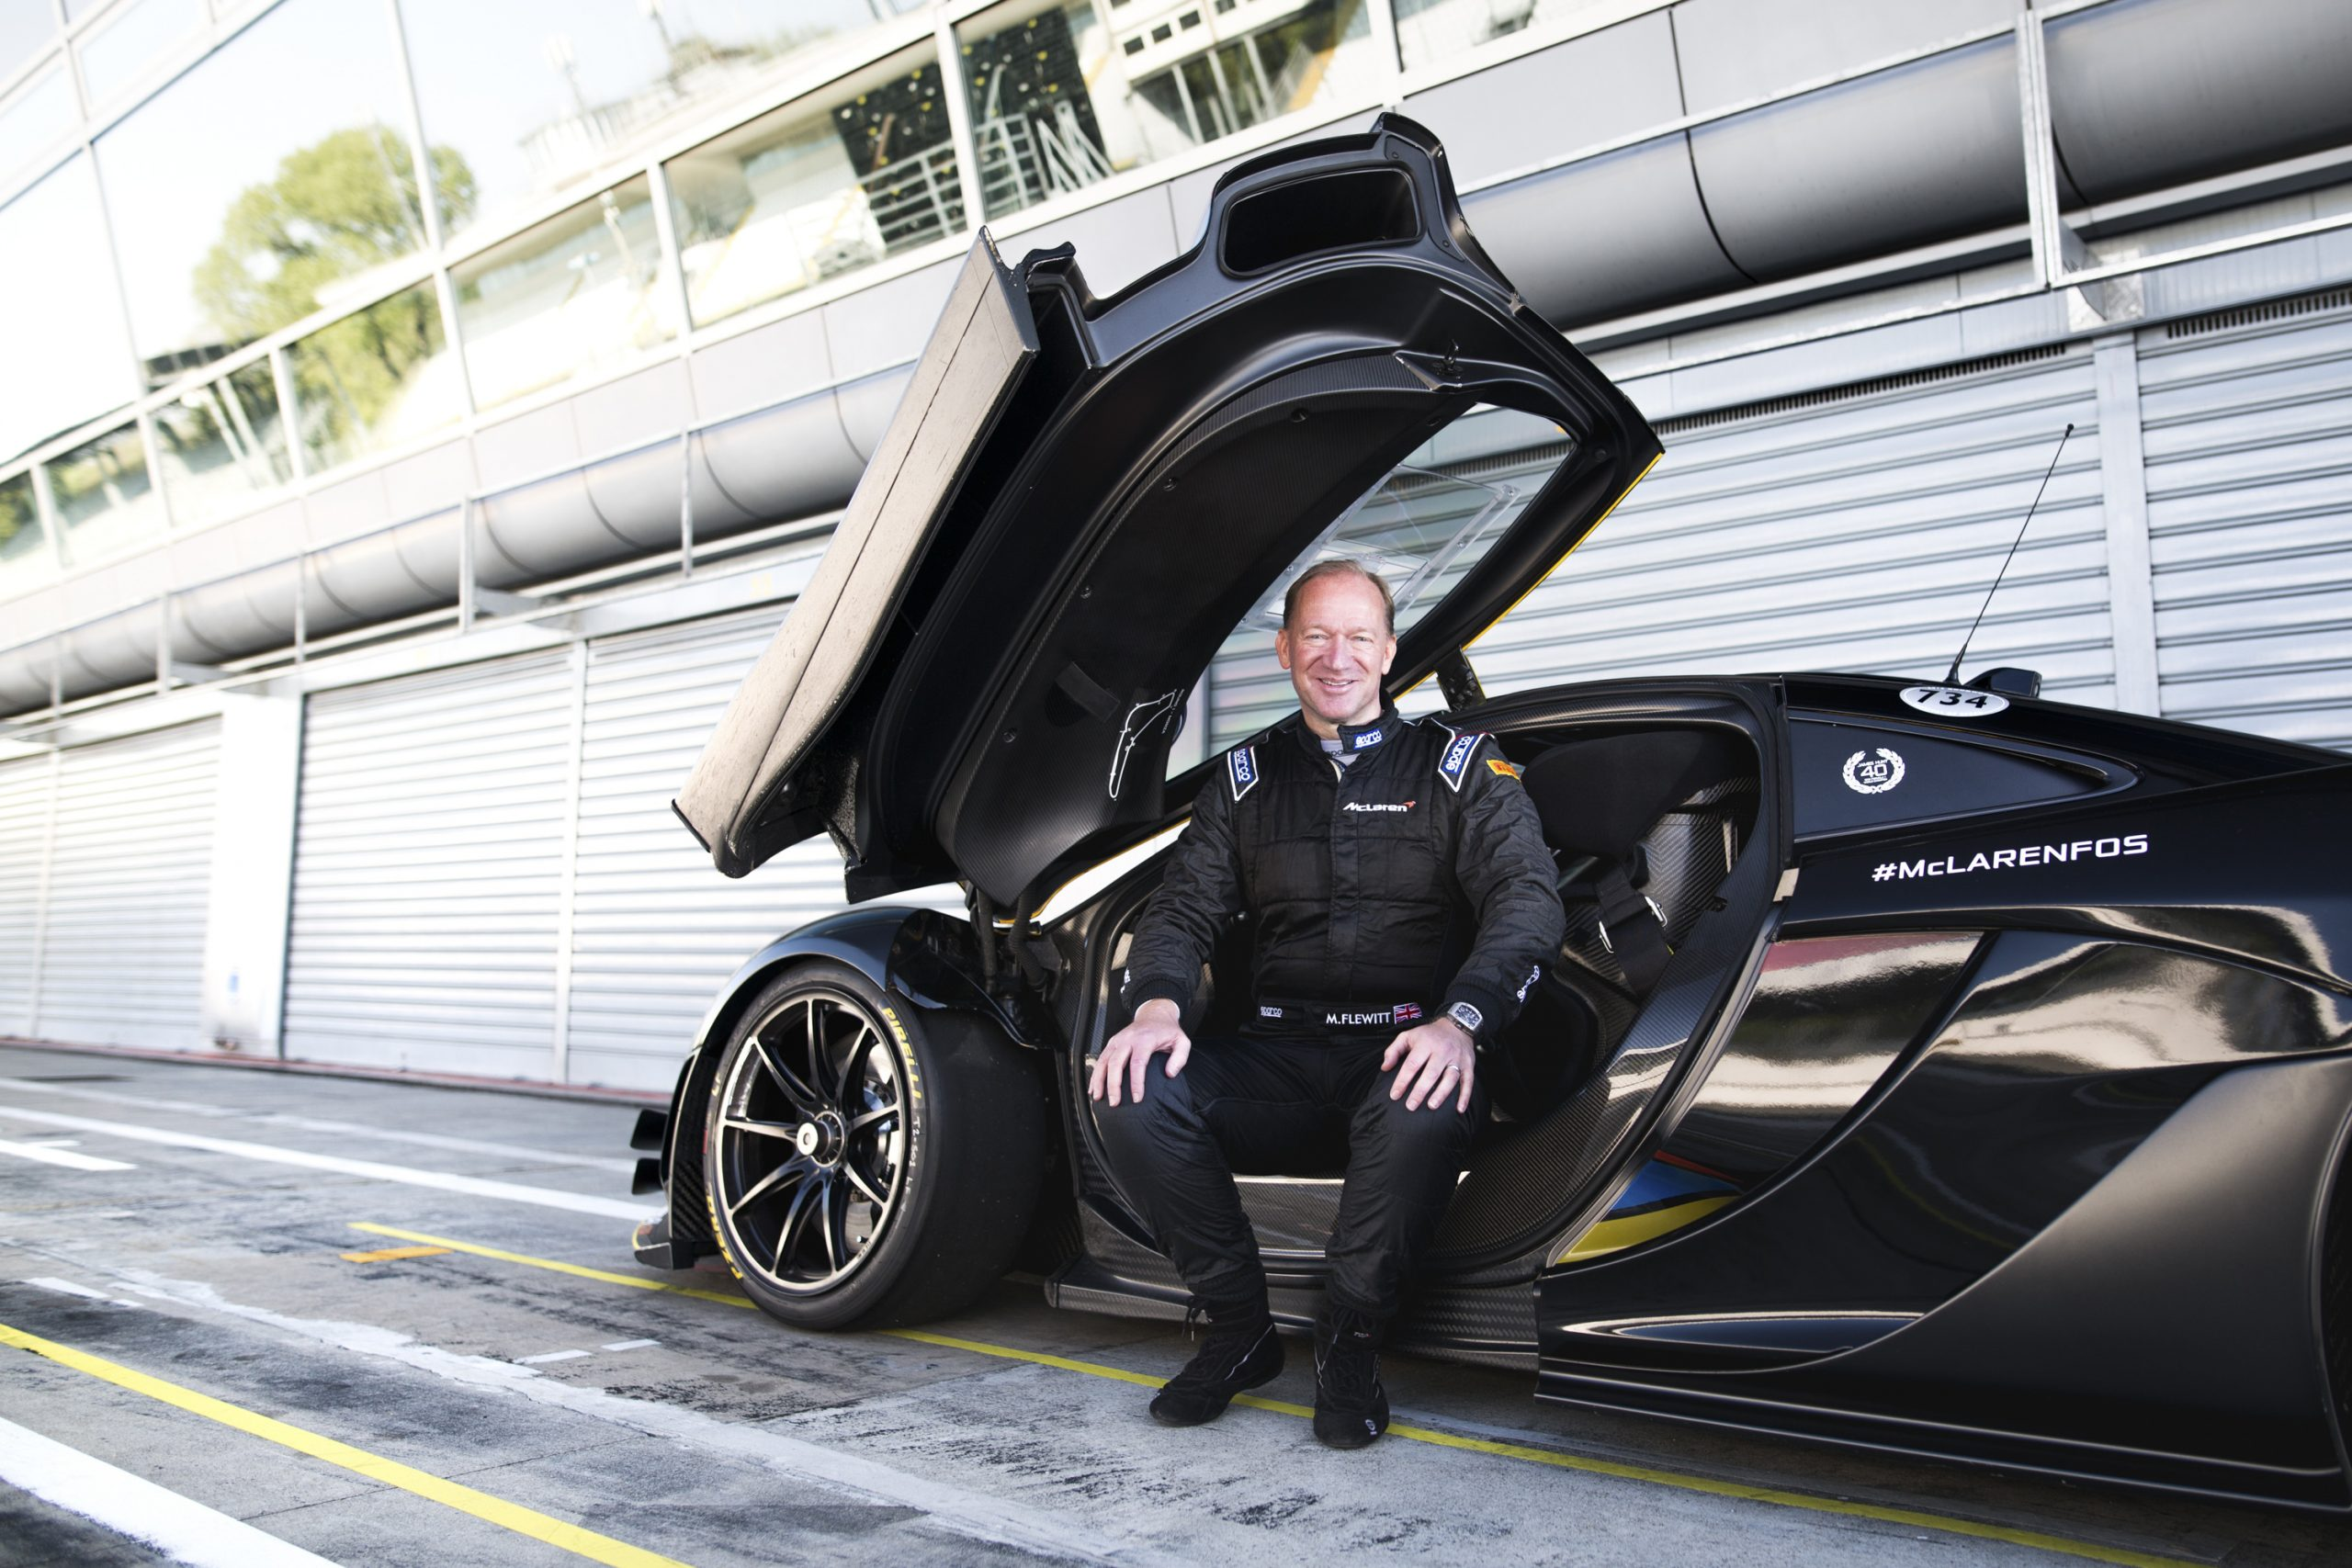 McLaren CEO Mike Flewitt sitting in a McLaren